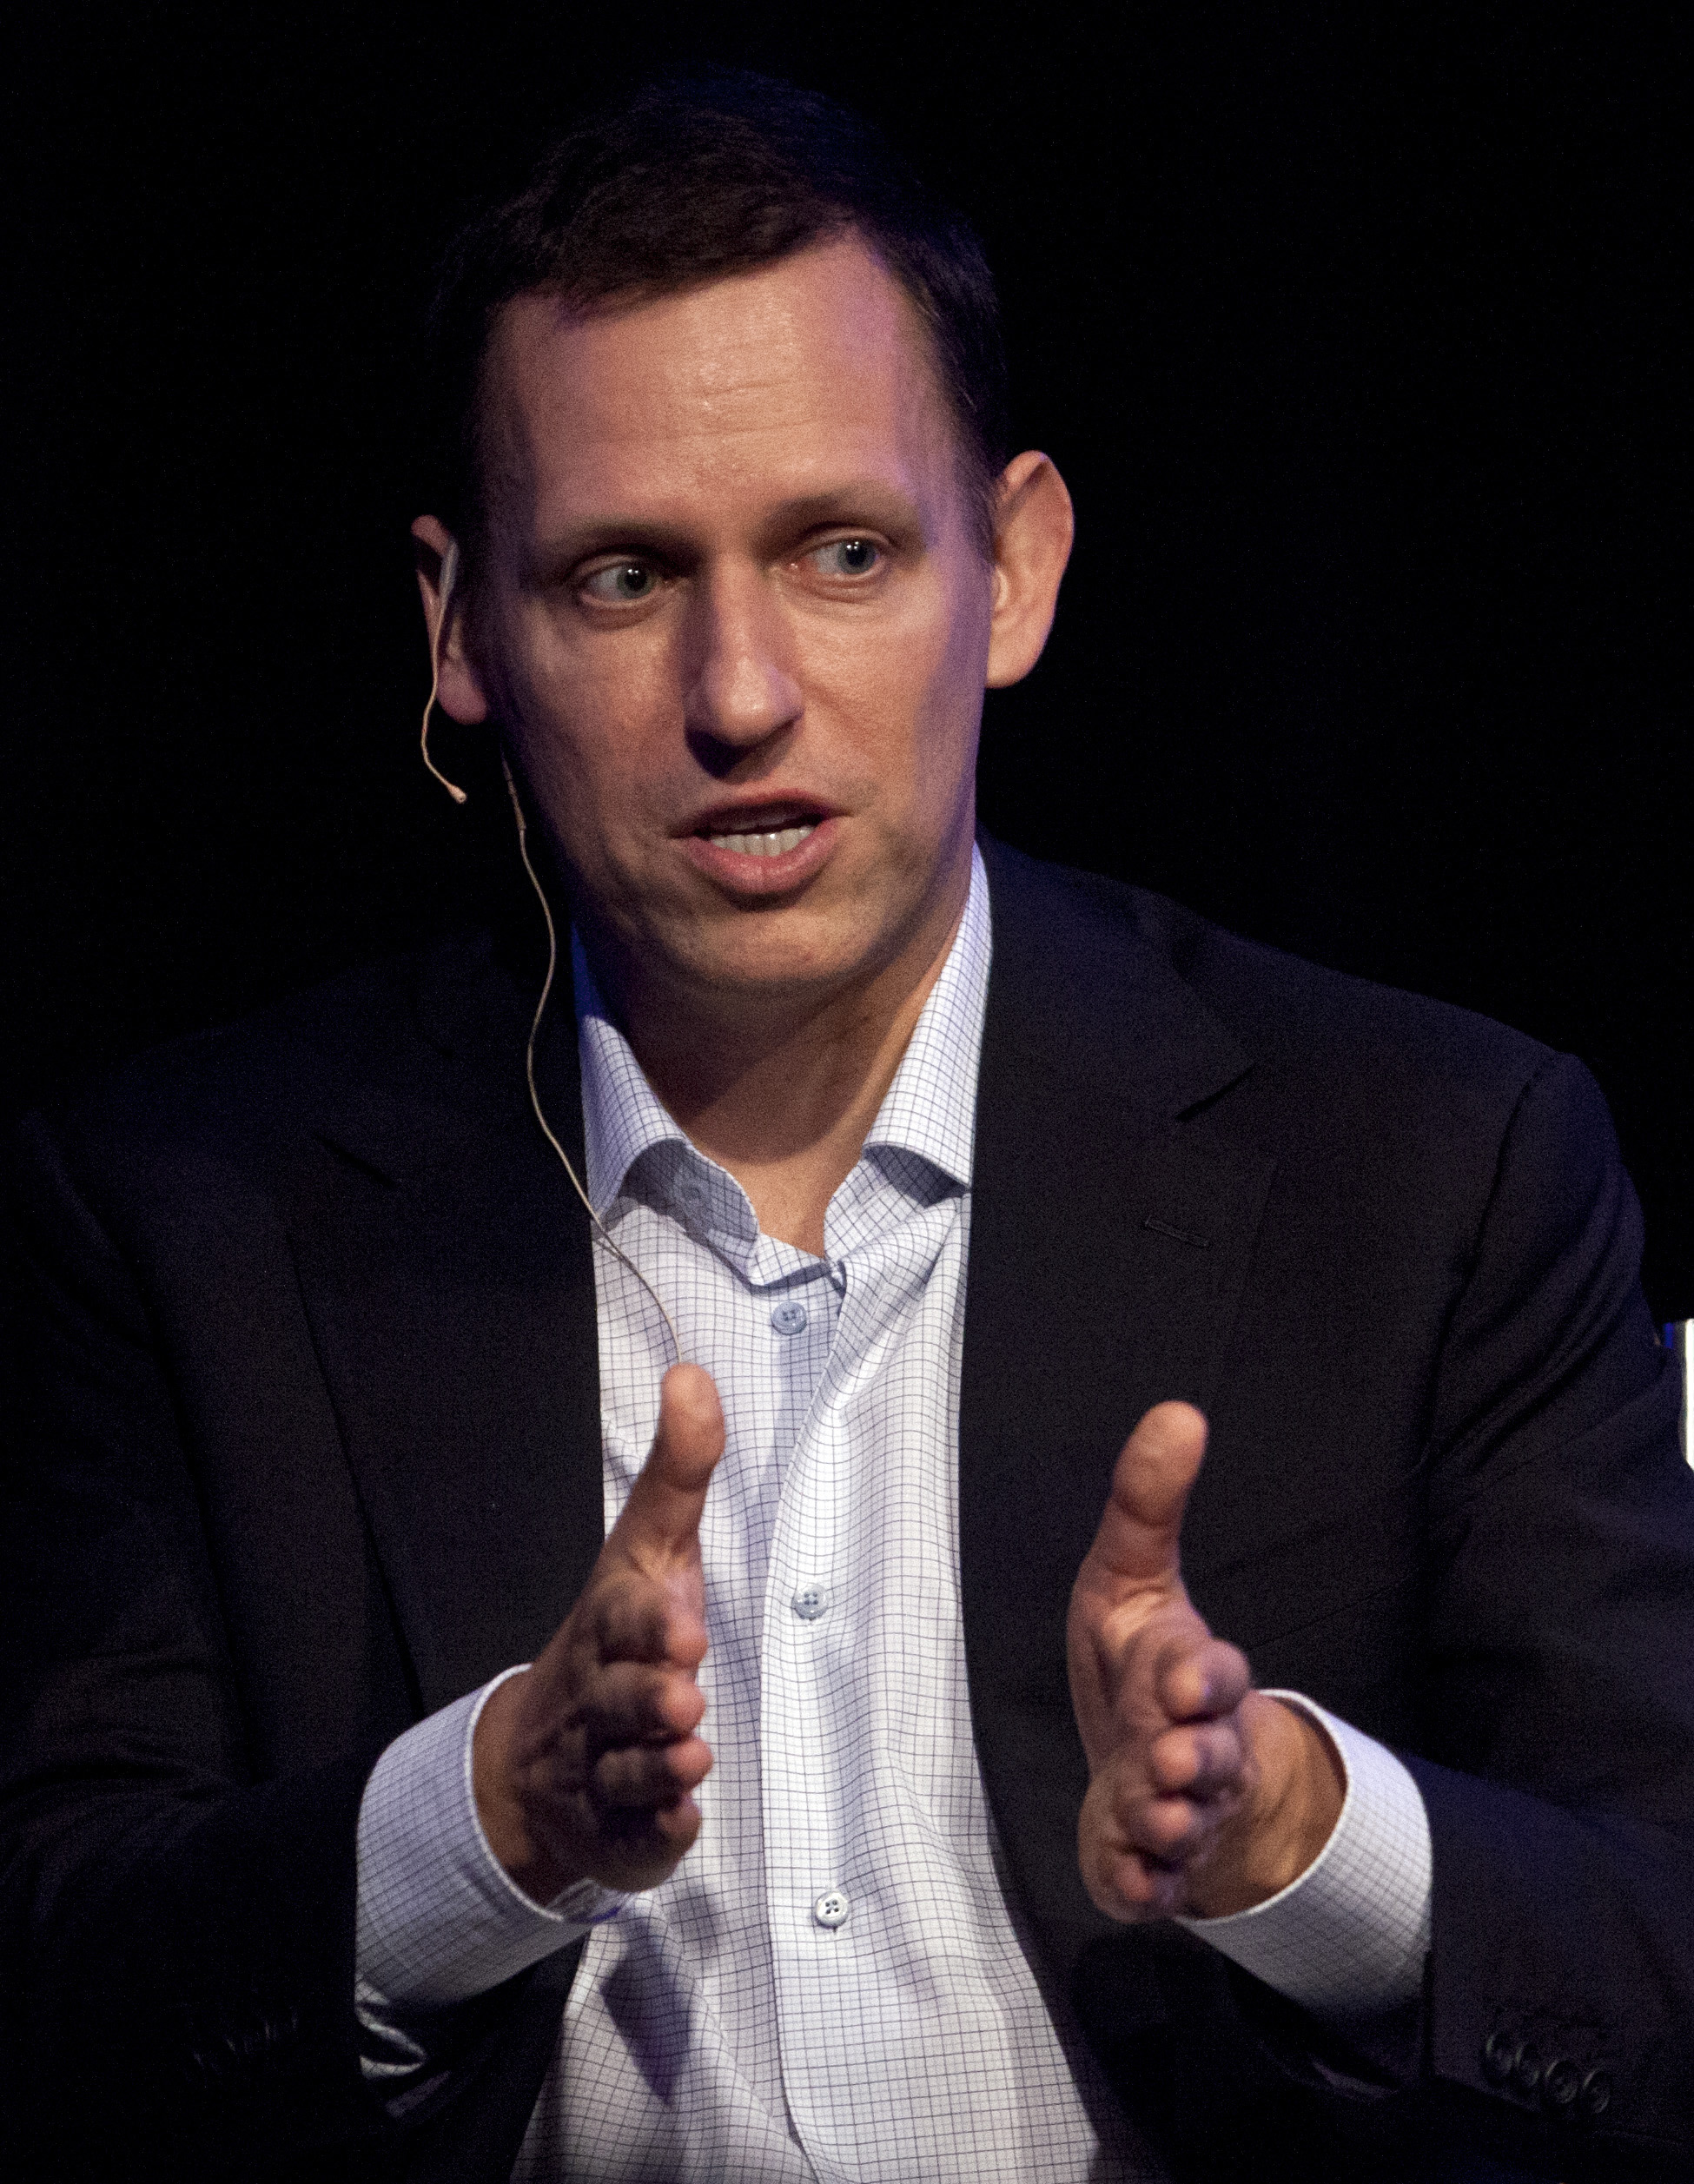 Peter Thiel during the StartOut LGBT Entrepreneurship Awards in San Francisco on March 8, 2012, in San Francisco.